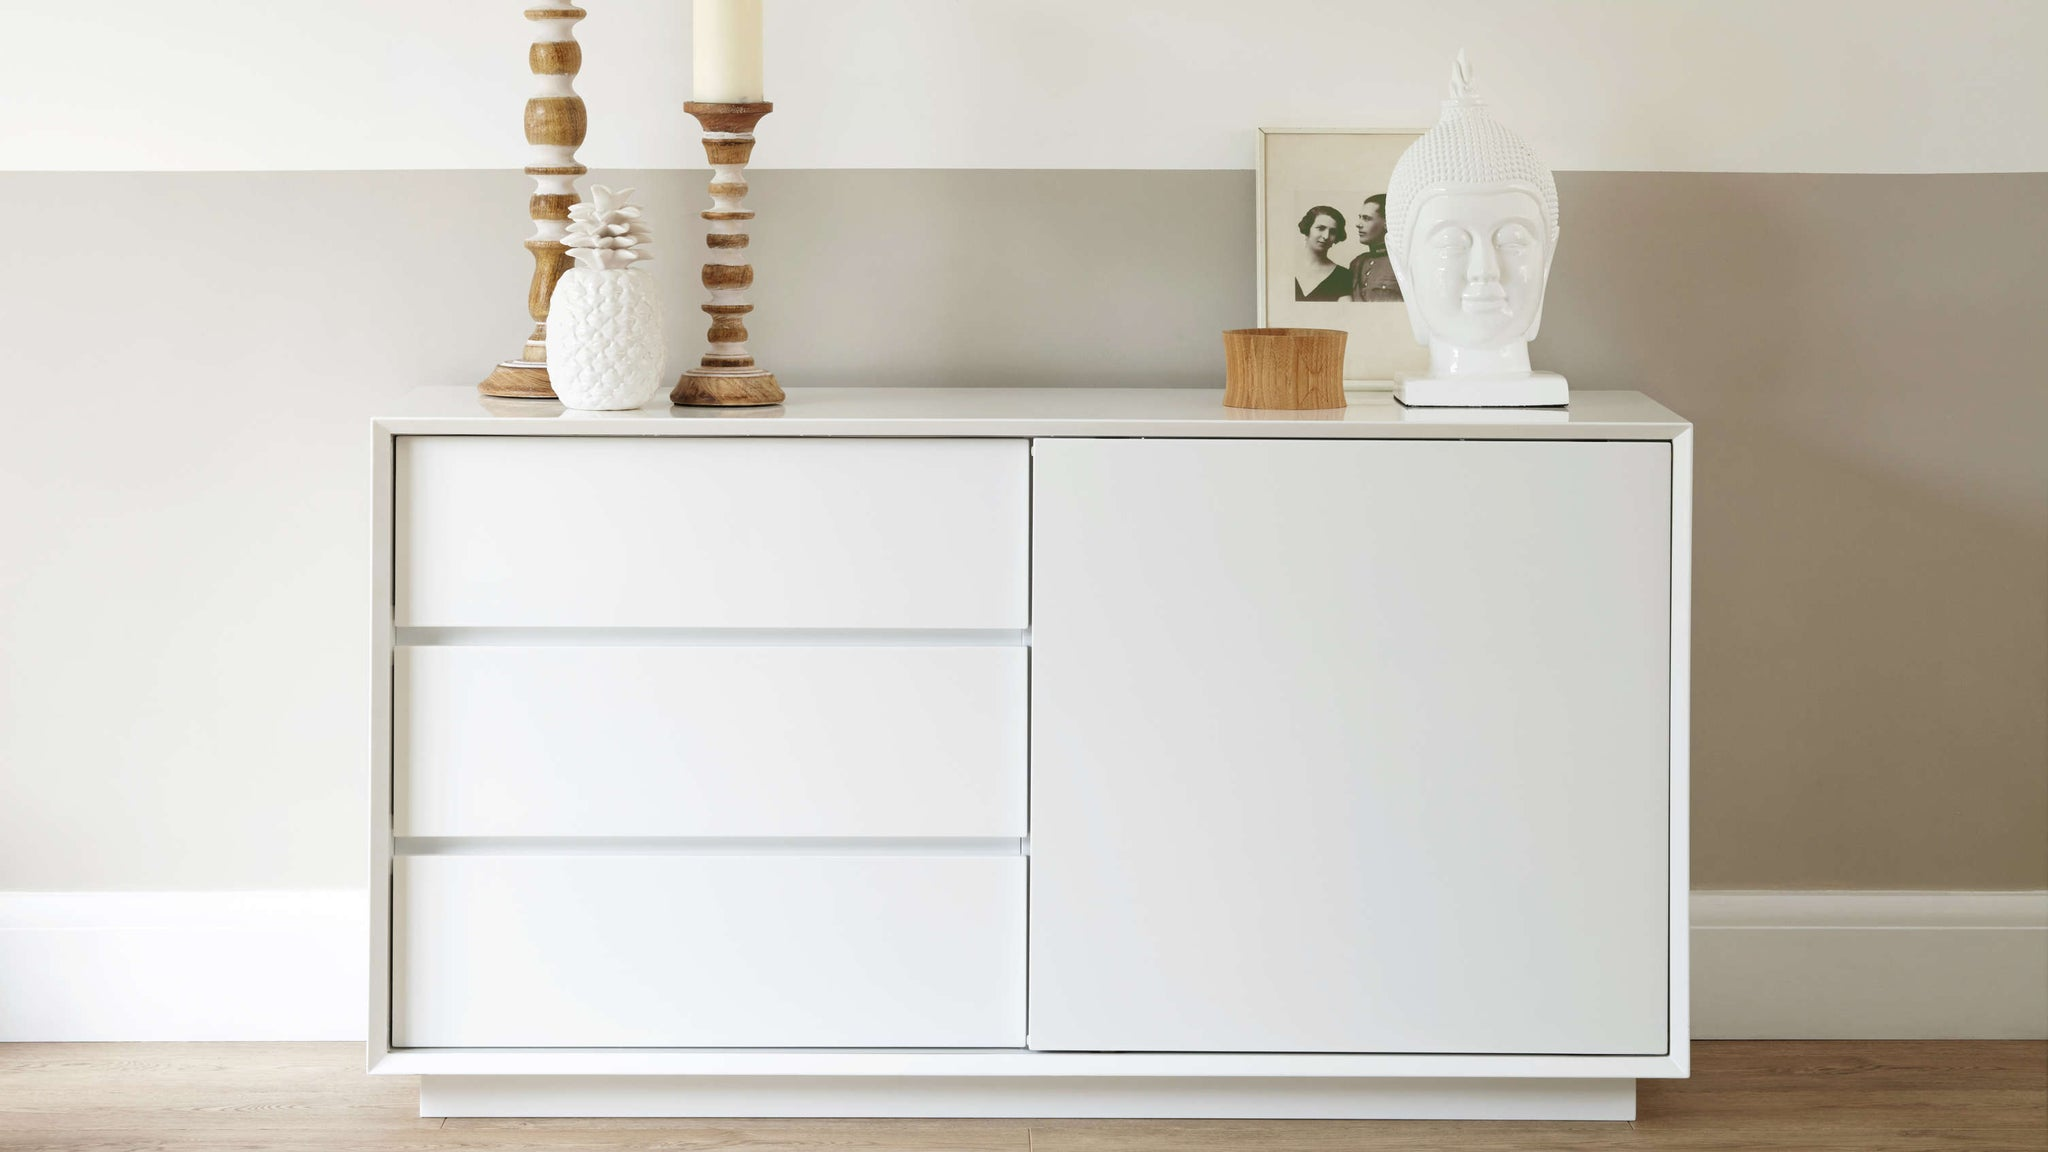 Designer Modern White Gloss Sideboard with Drawers Julia Kendell